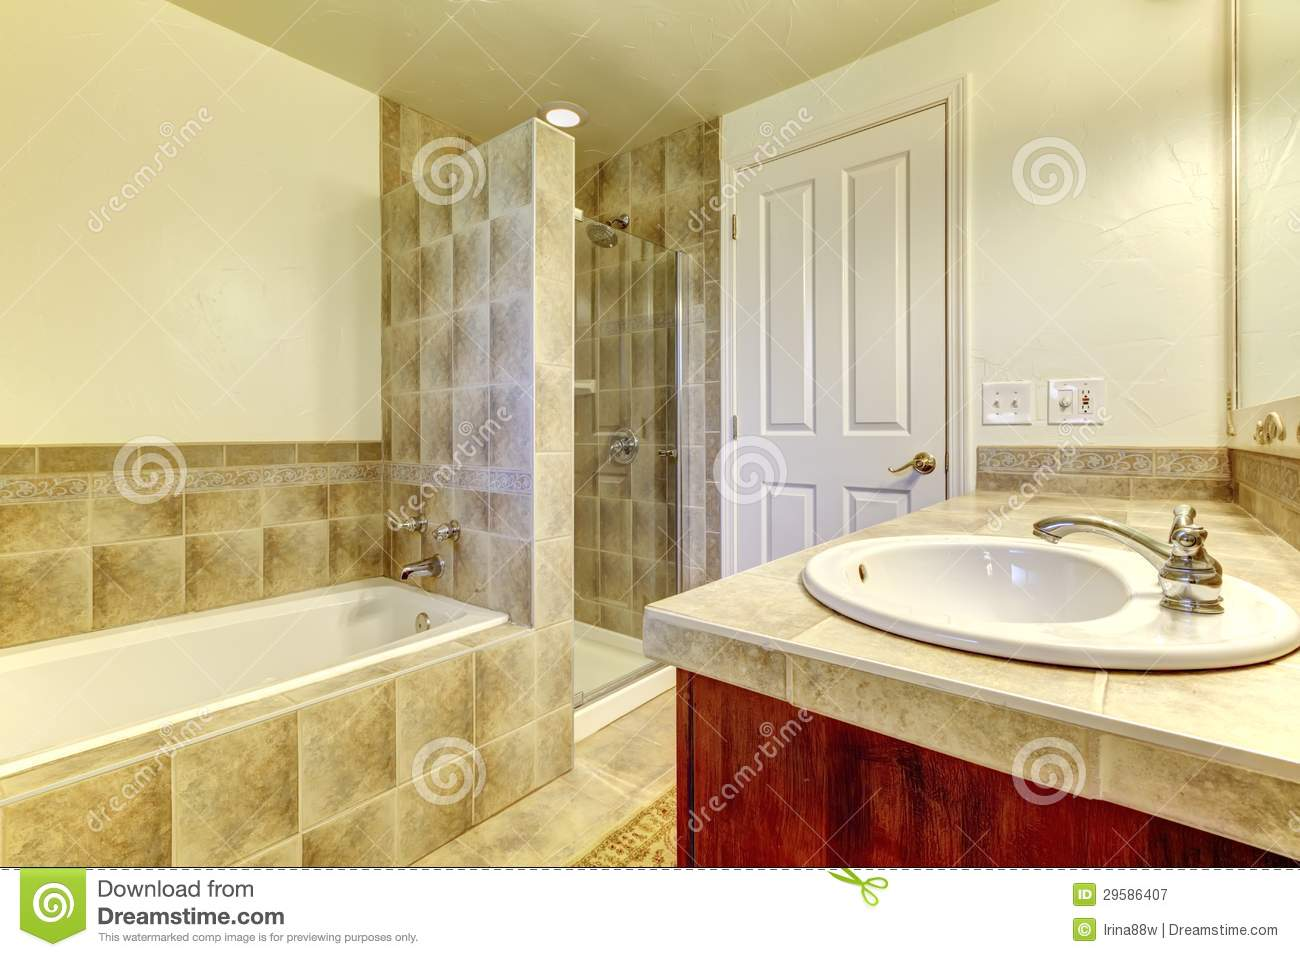 Baños Print Bathroom With Tub Small Shower And Wood Cabinets Royalty